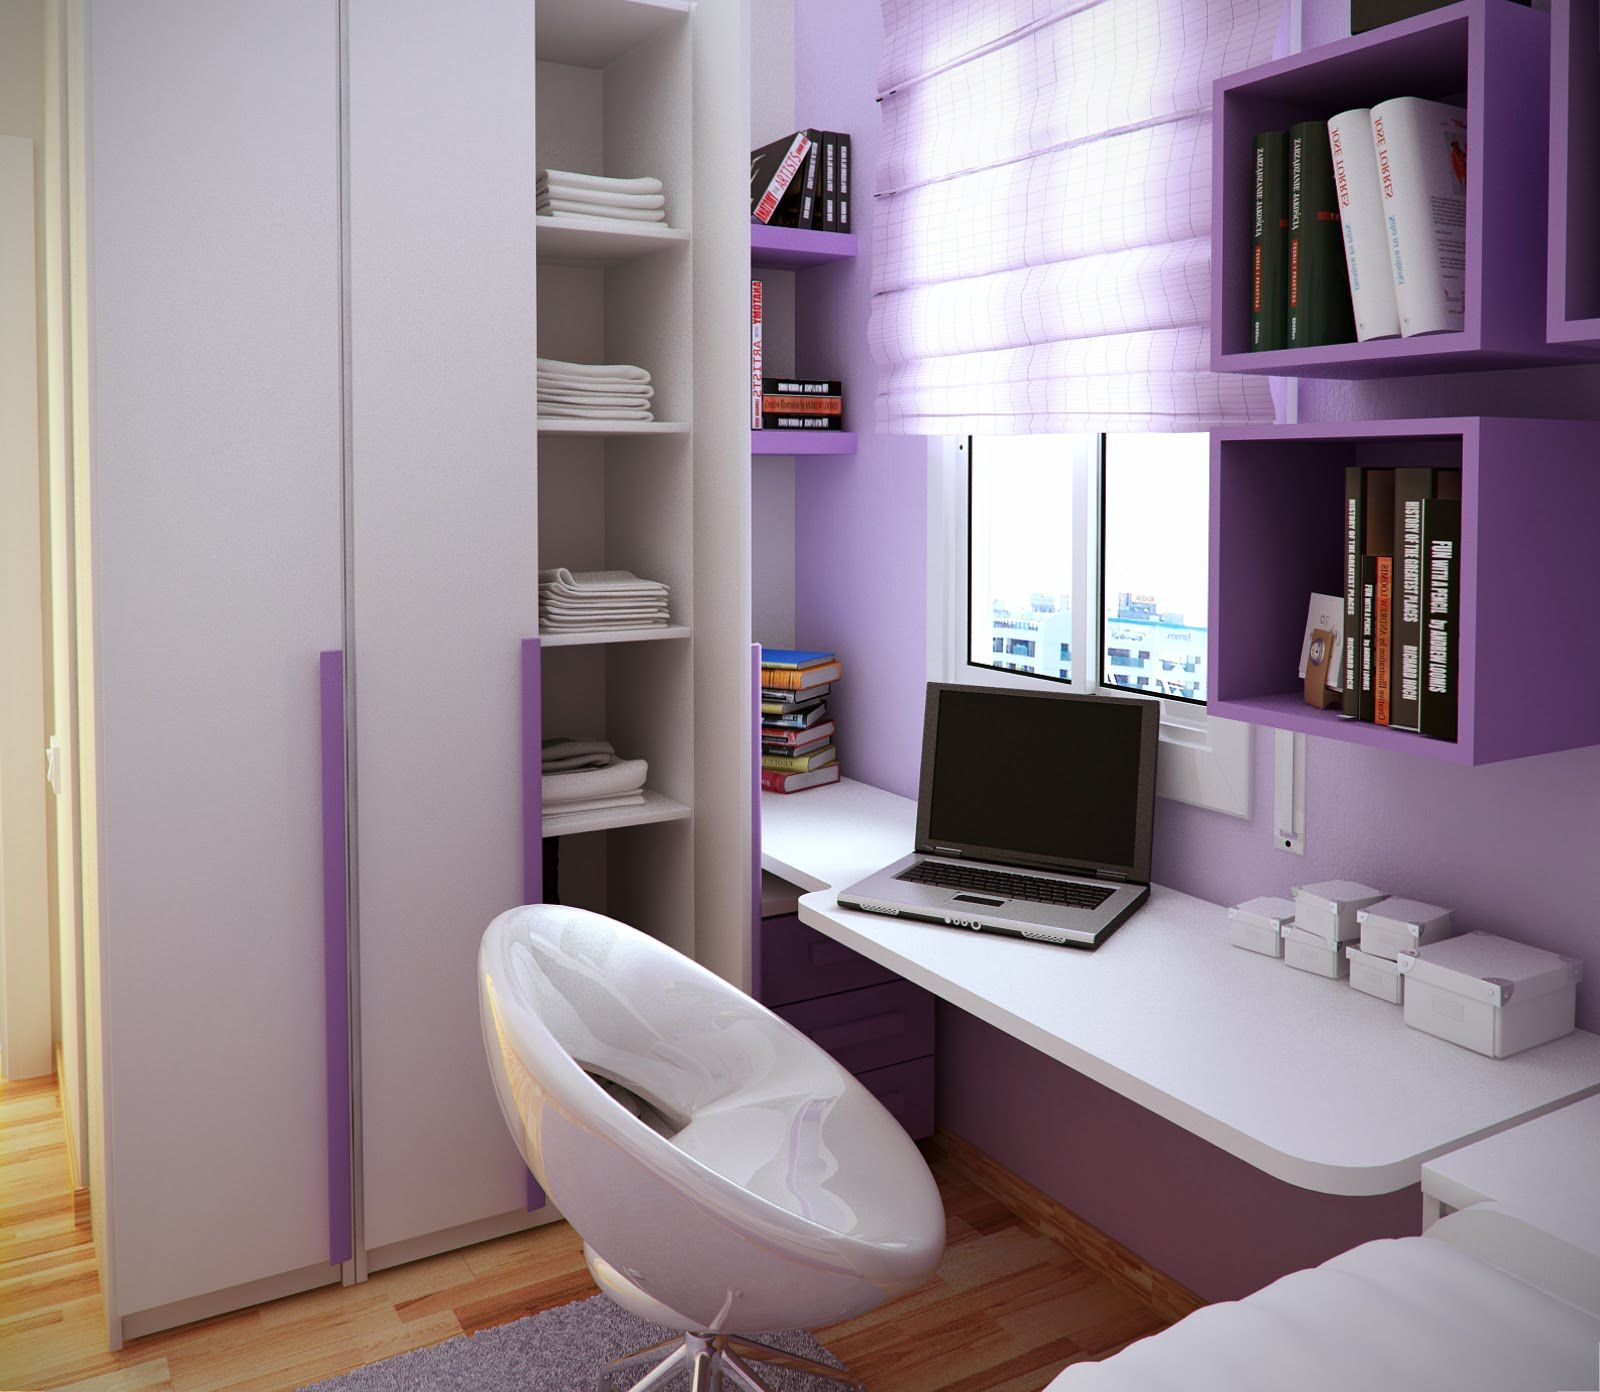 Tiny Room Design Amusing I Feel Like I Would Be So Much More Inclined To Do My Homework If . Inspiration Design